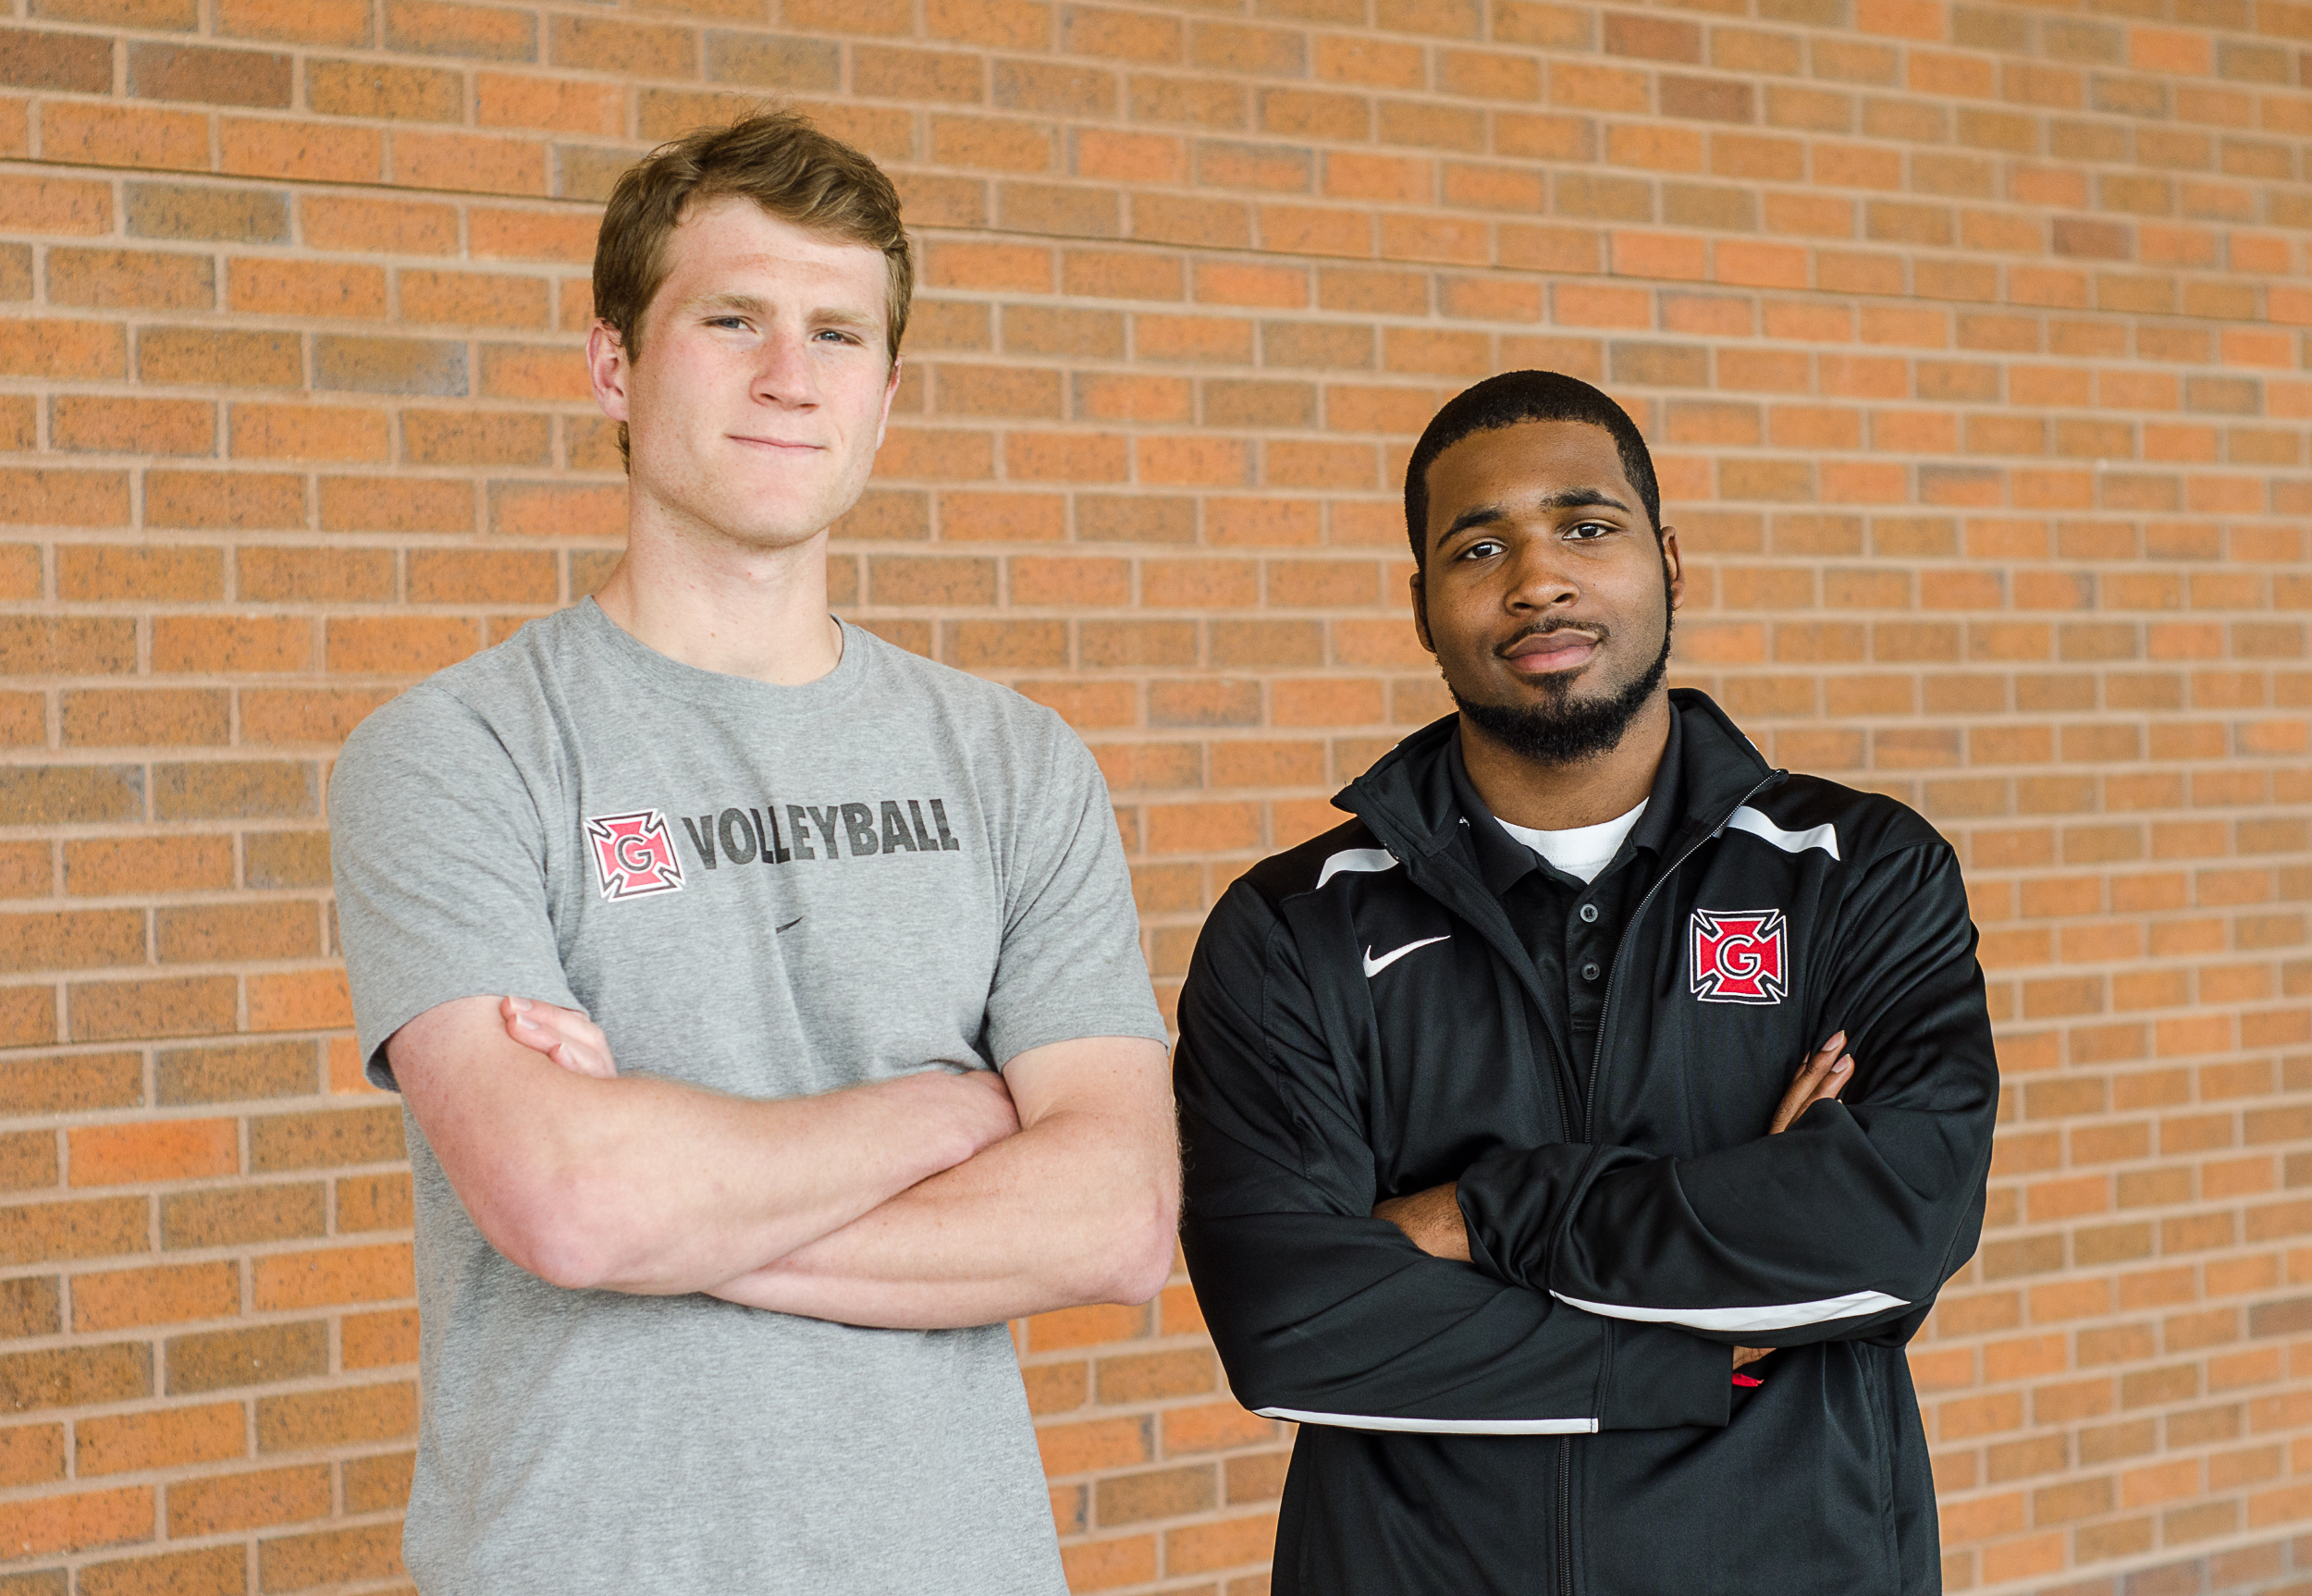 Tracy Johnson '16 and Jermaine Marks '17 rep for the teams they manage: volleyball and basketball, respectively. Photo by Ellen Schoenmaker